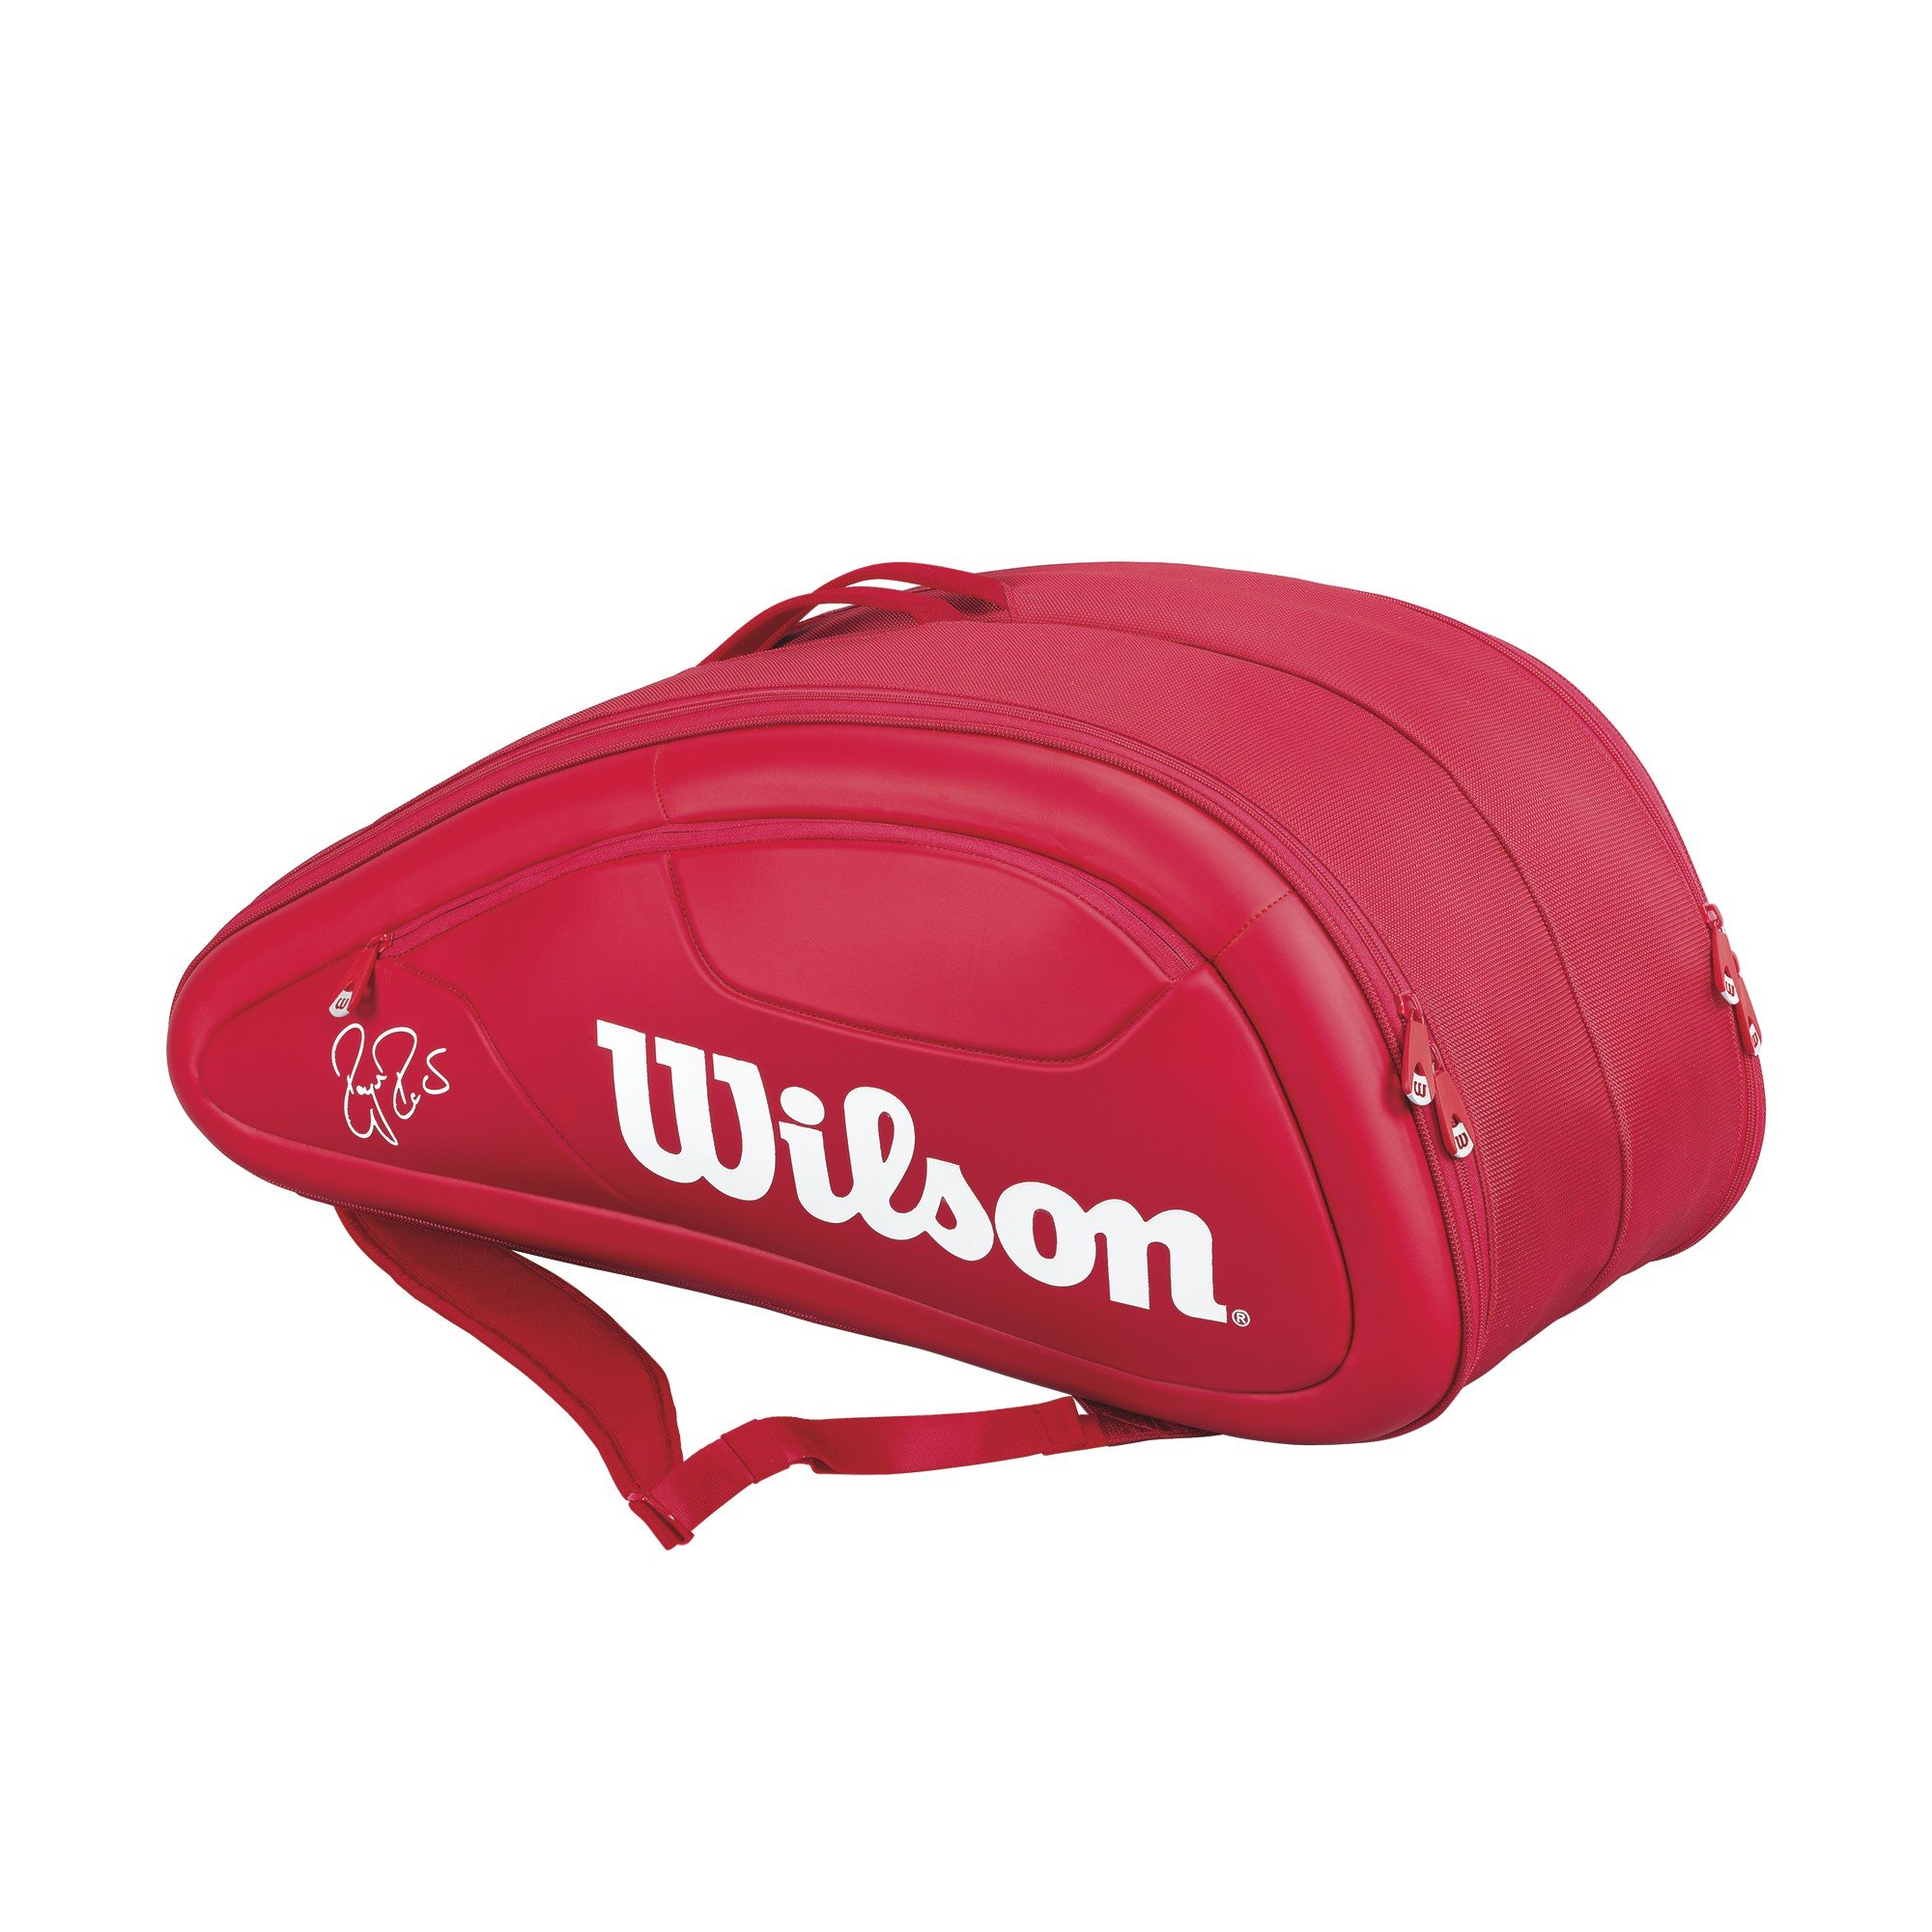 Wilson Federer DNA Collection Racket Bag (Holds up to 12), Red